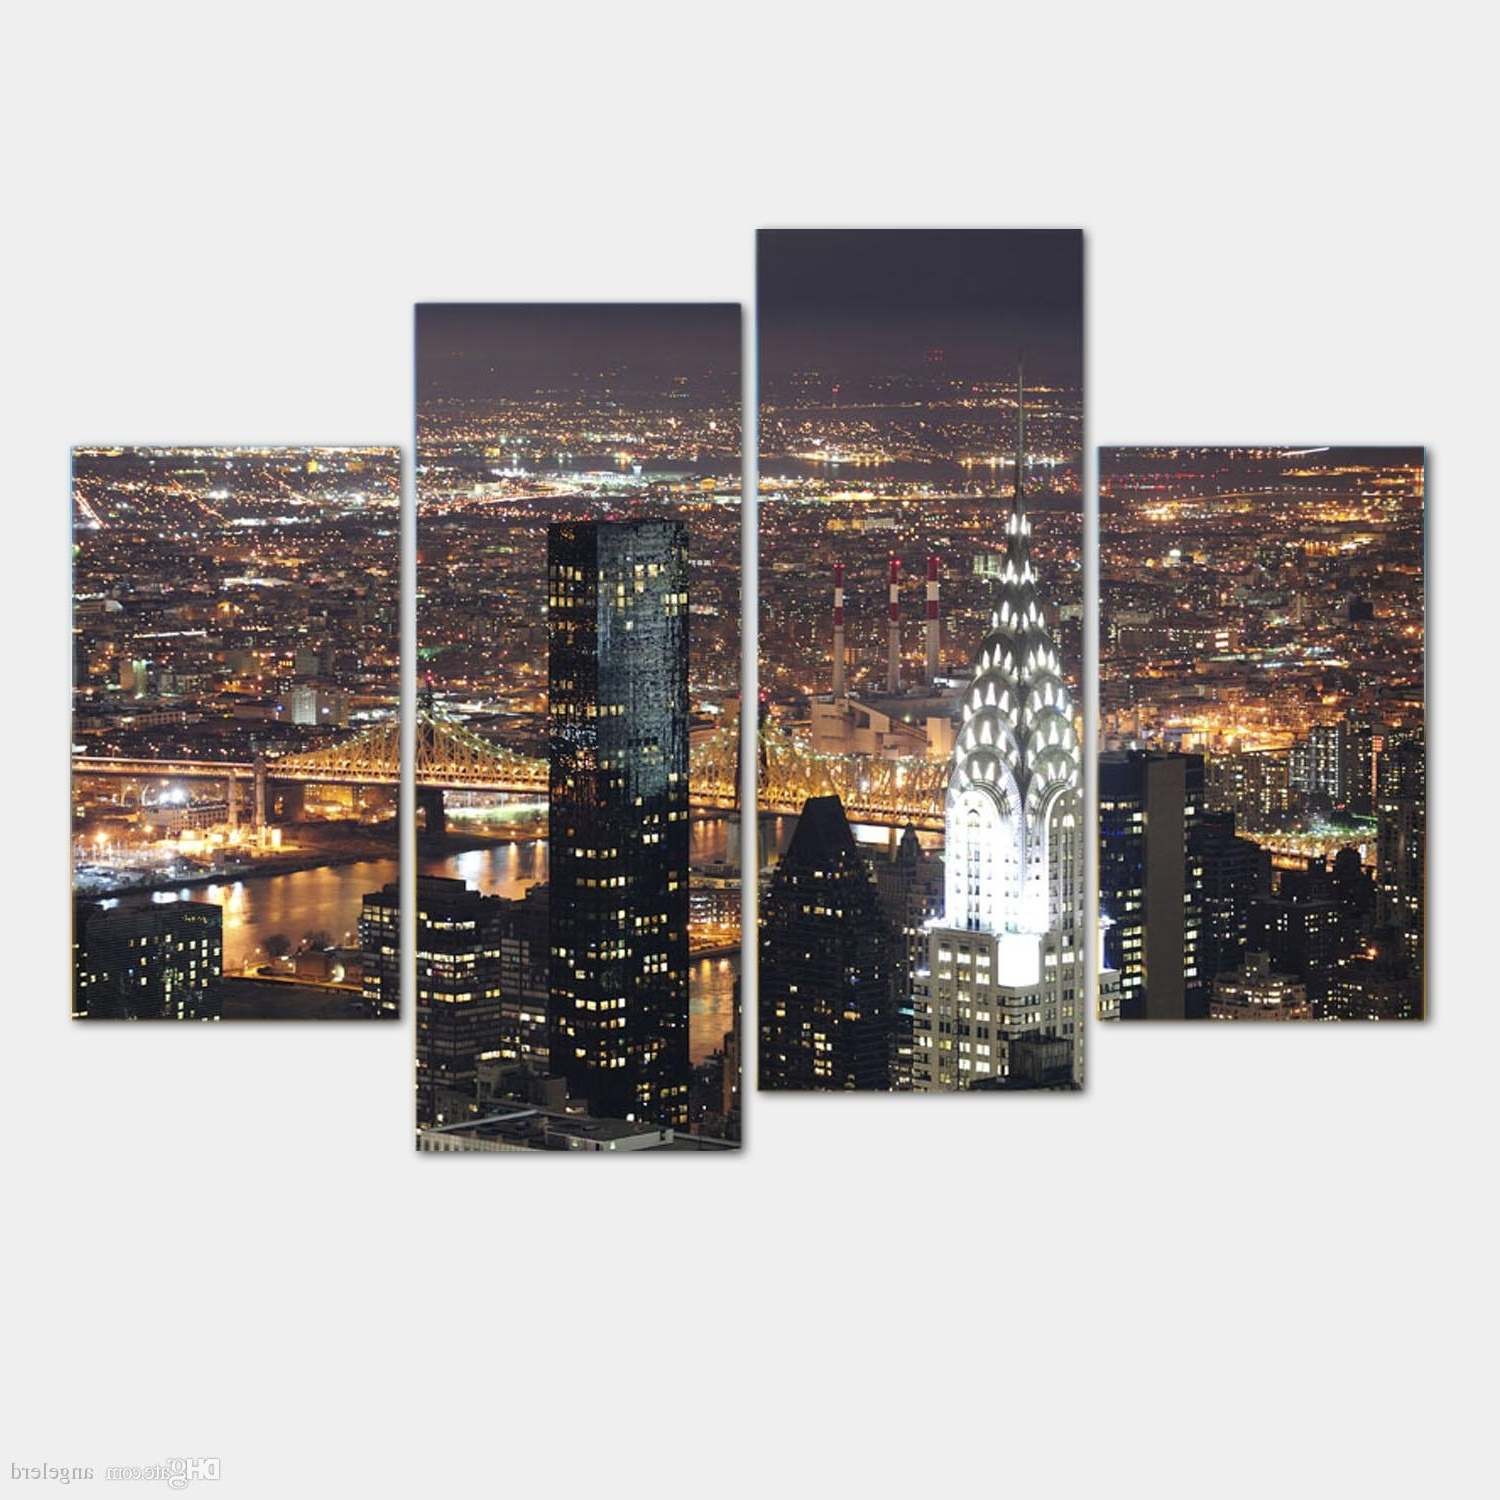 2018 New York City Wall Art Throughout Discount Wall Art New York City Manhattan Usa With Lights In Nice (View 3 of 15)